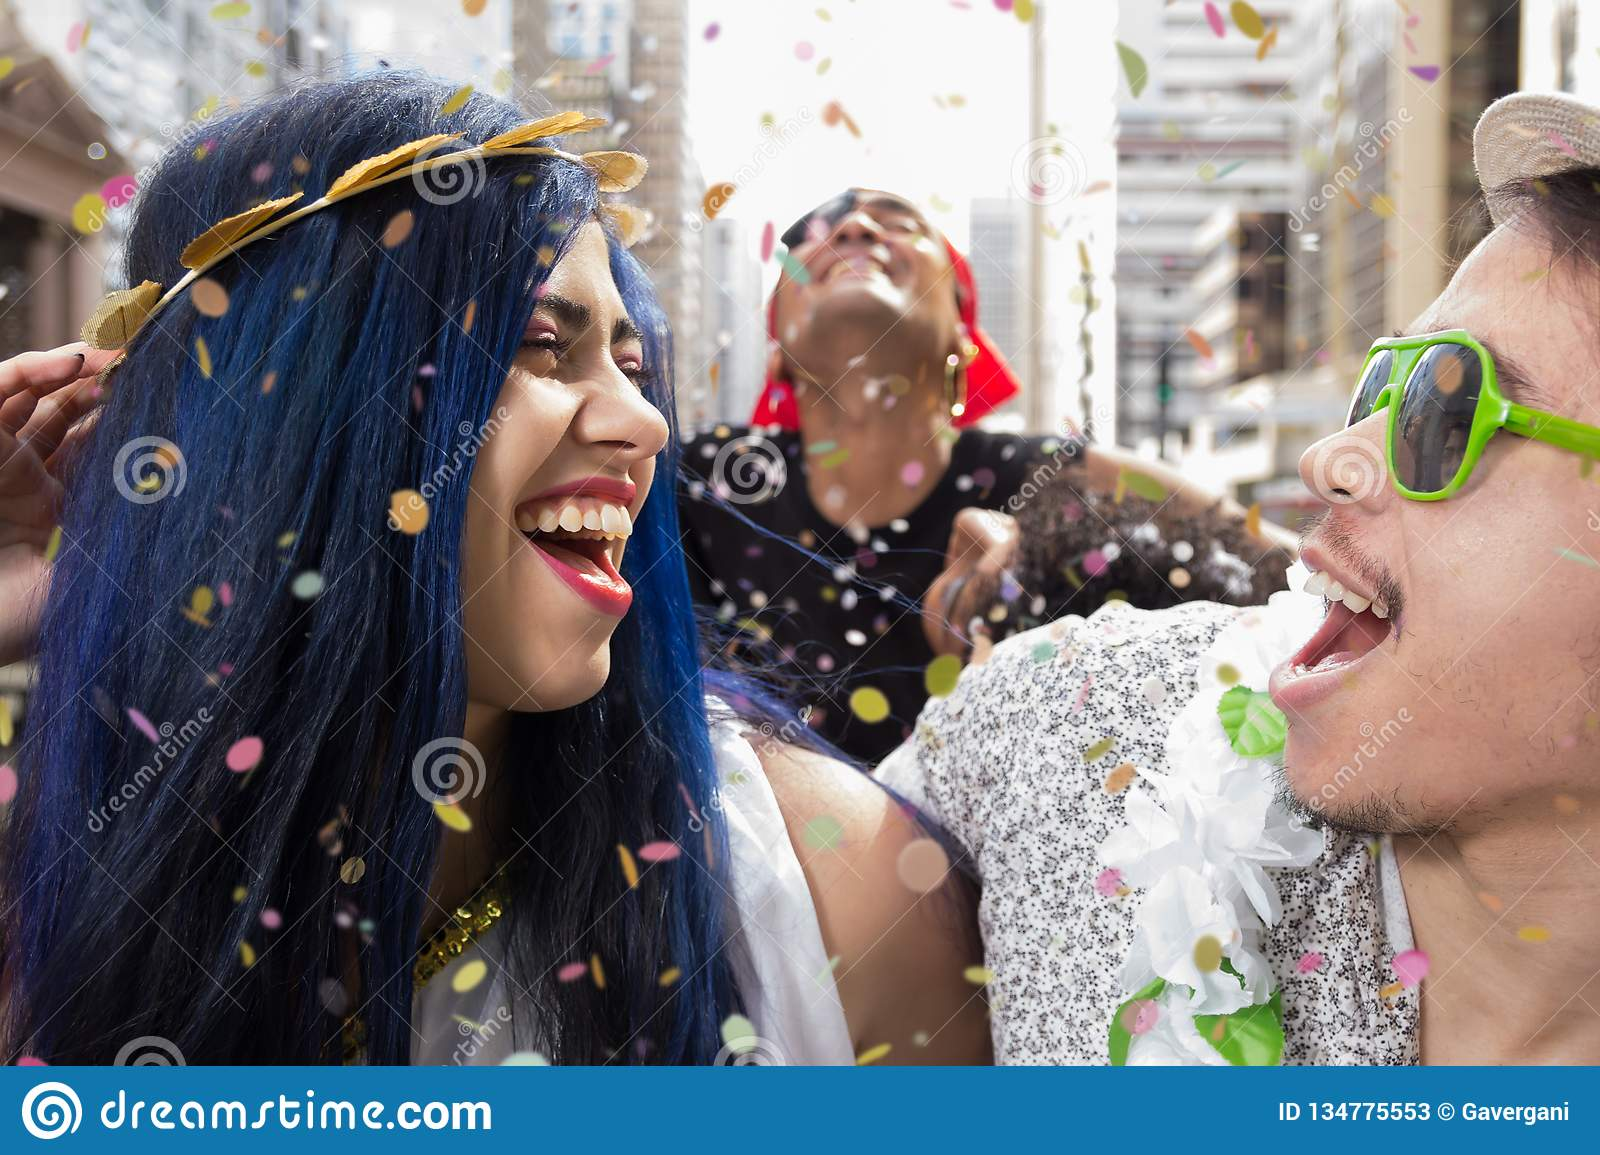 Carnaval party. Dressed group of Brazil friends going to street Carnival. Happy brazilian partygoers in costume in parade festival